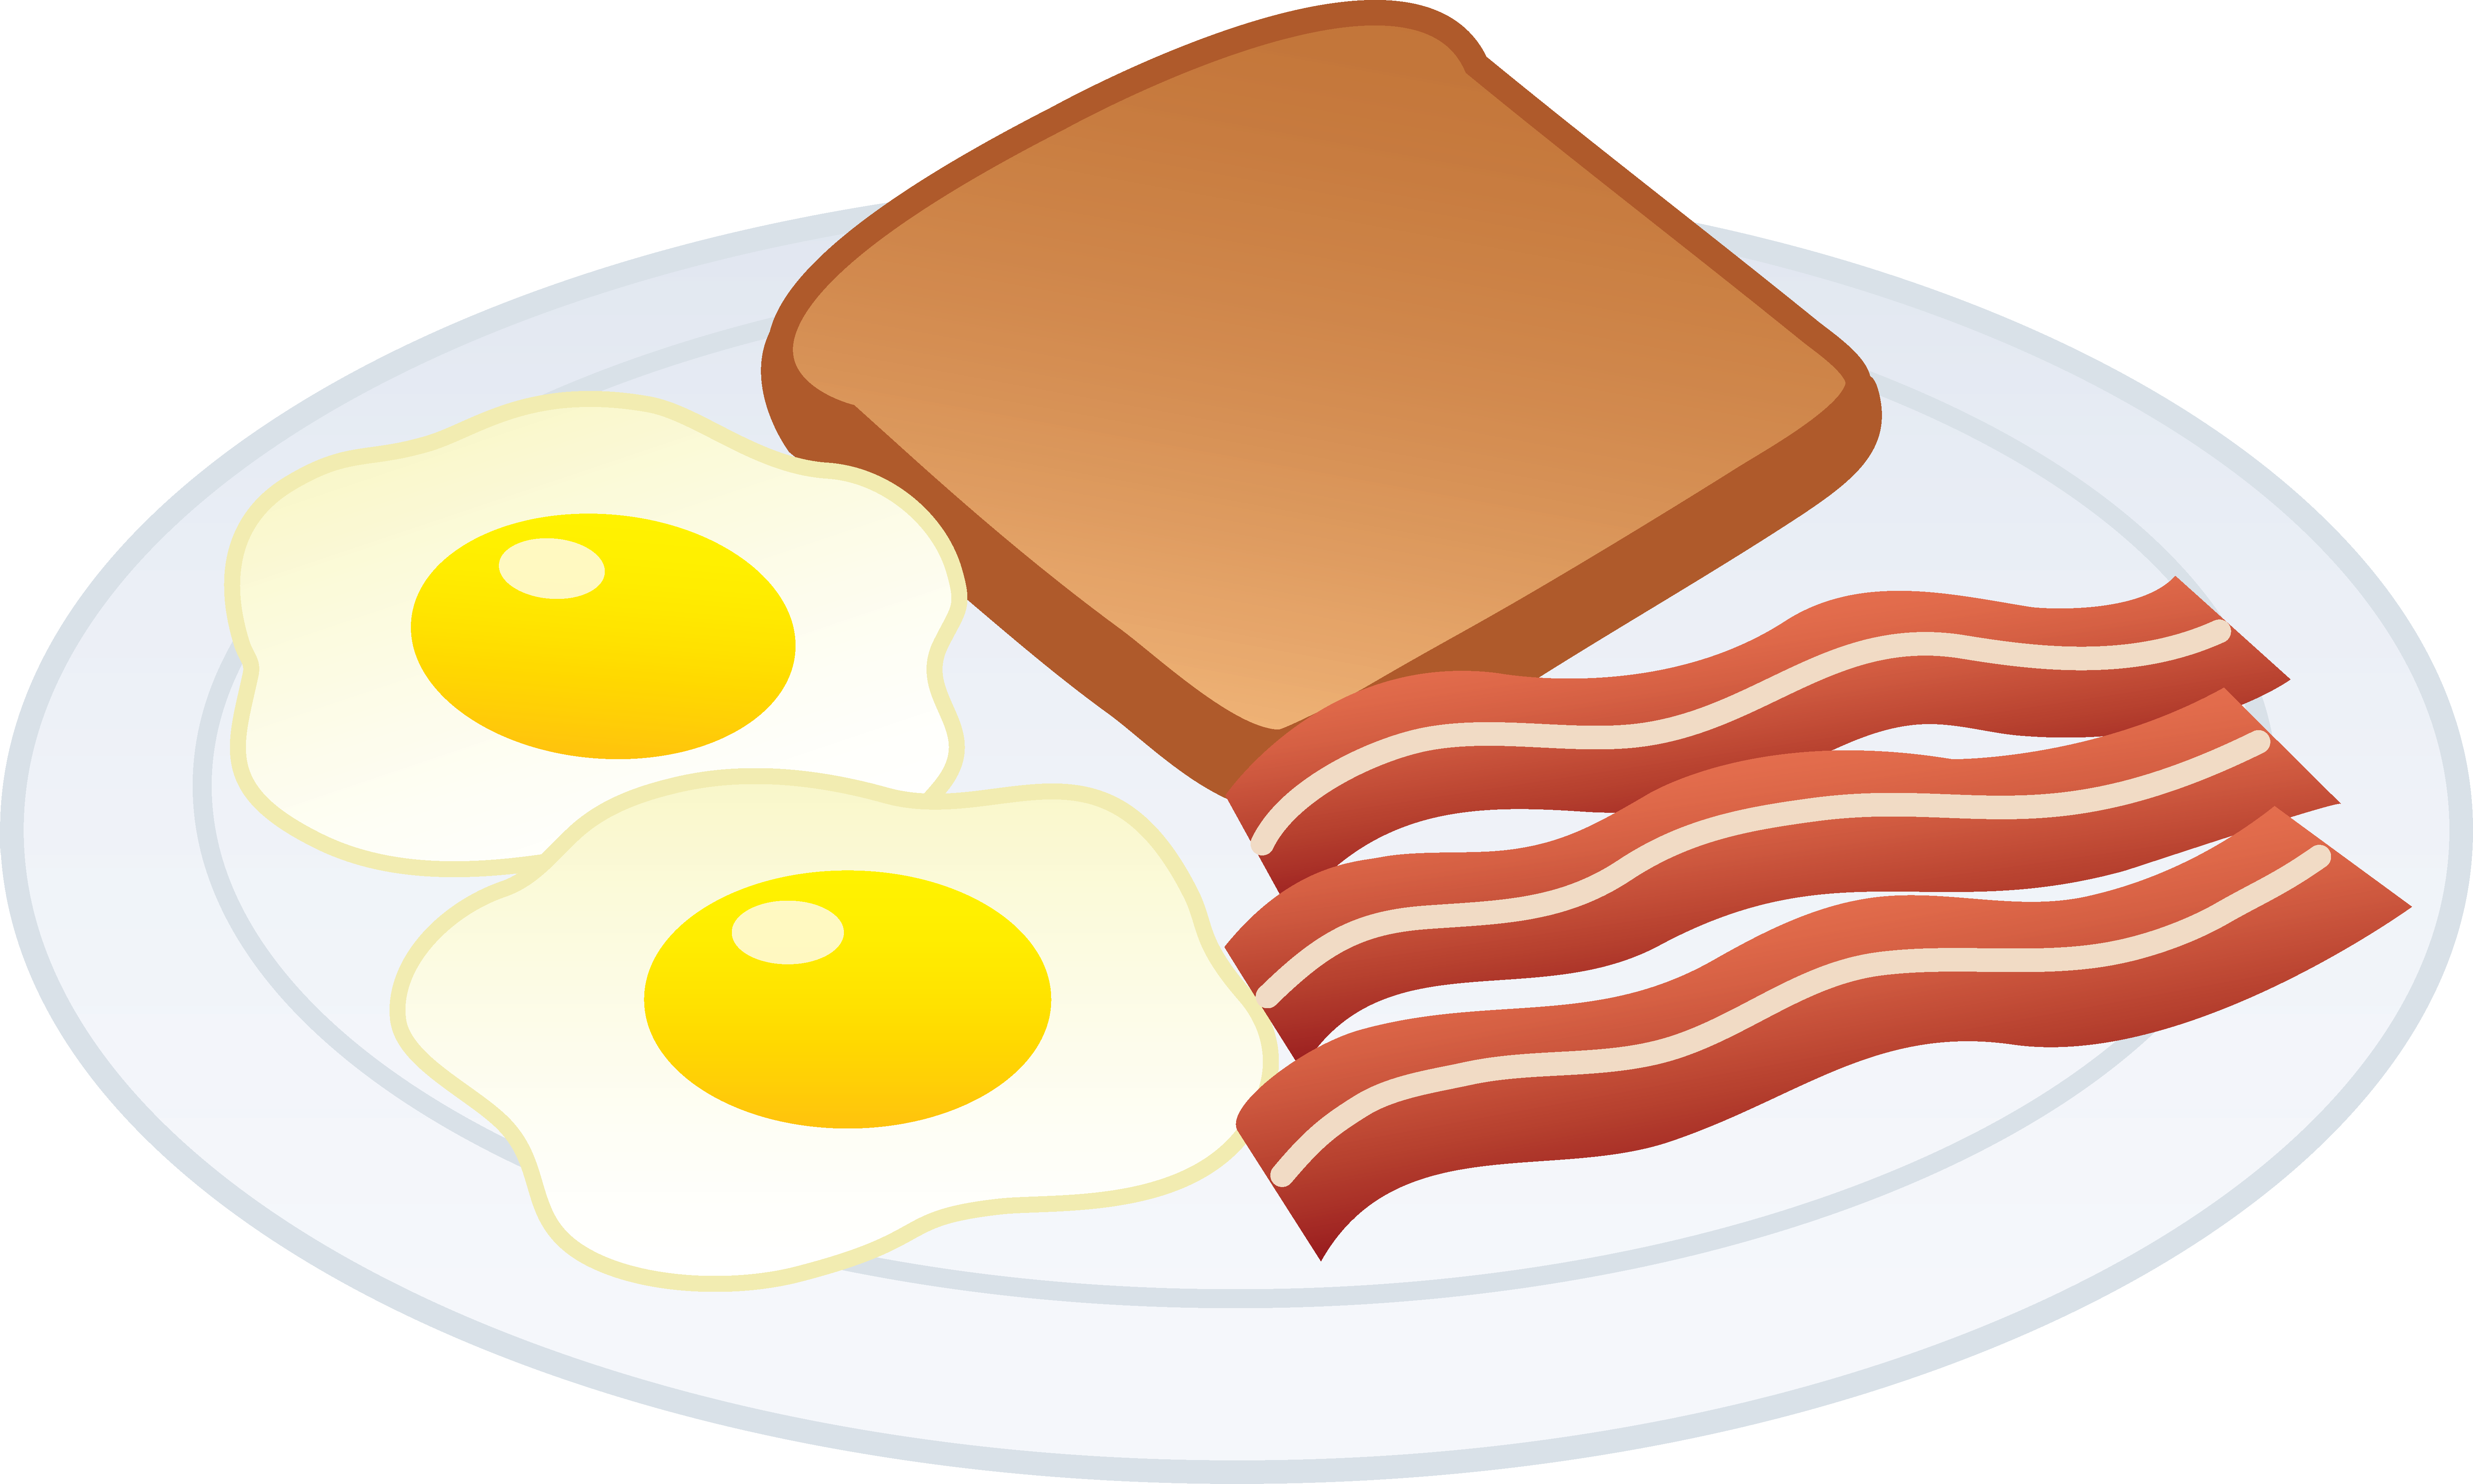 Food for breakfast clipart clipart royalty free library Free Breakfast Clipart Pictures - Clipartix clipart royalty free library